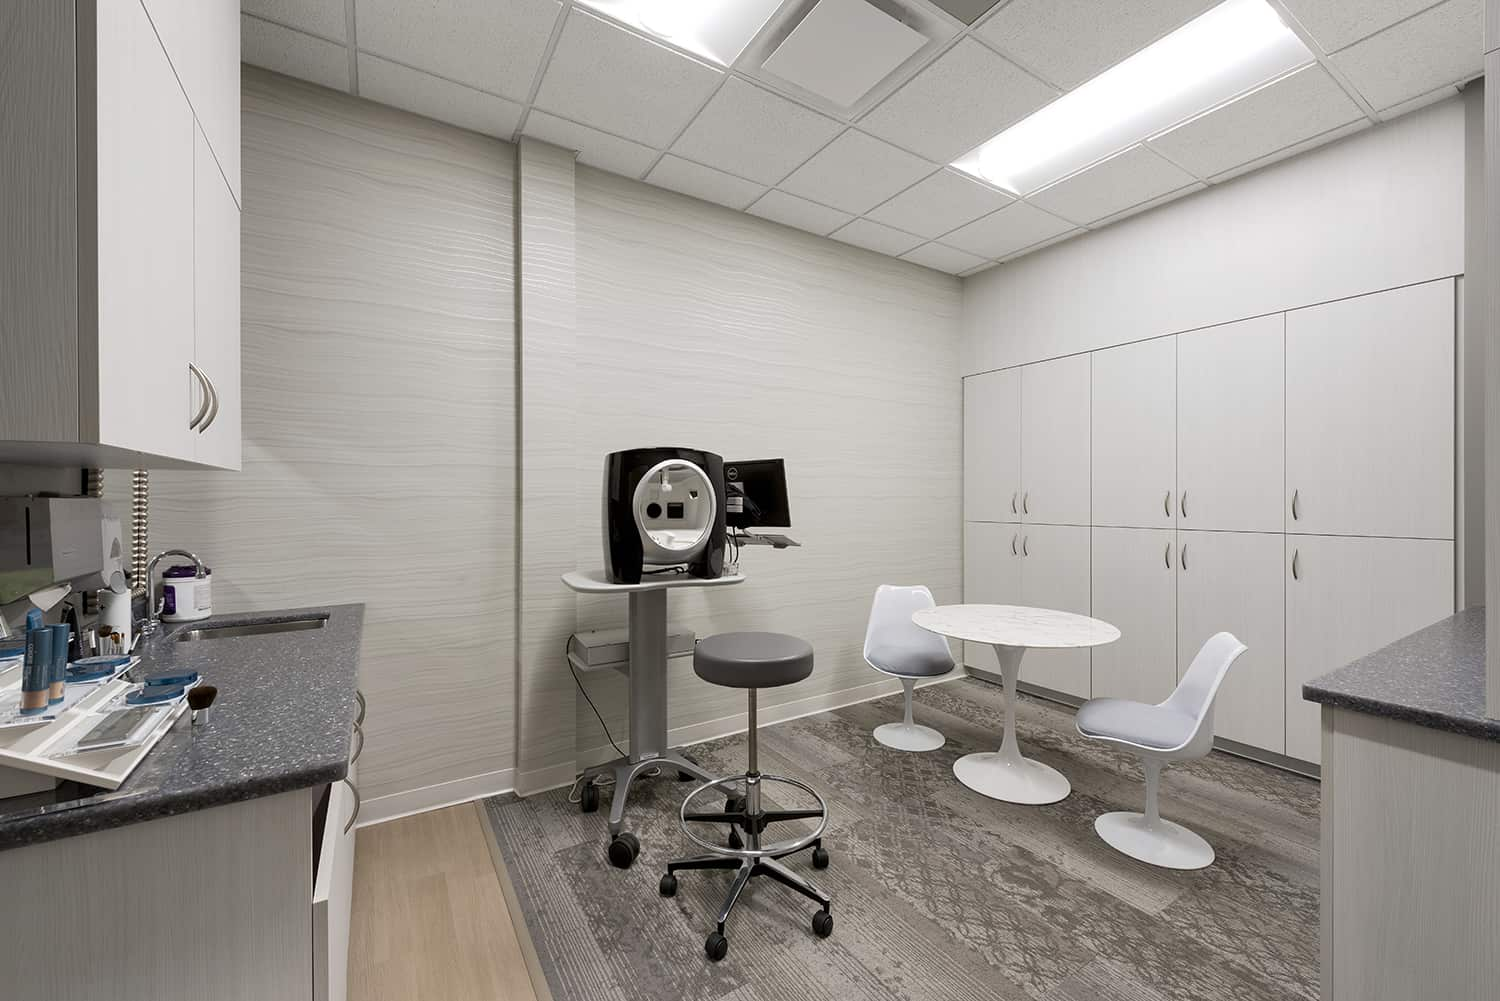 A dermatology procedure room with casework storage and in-room casual seating.